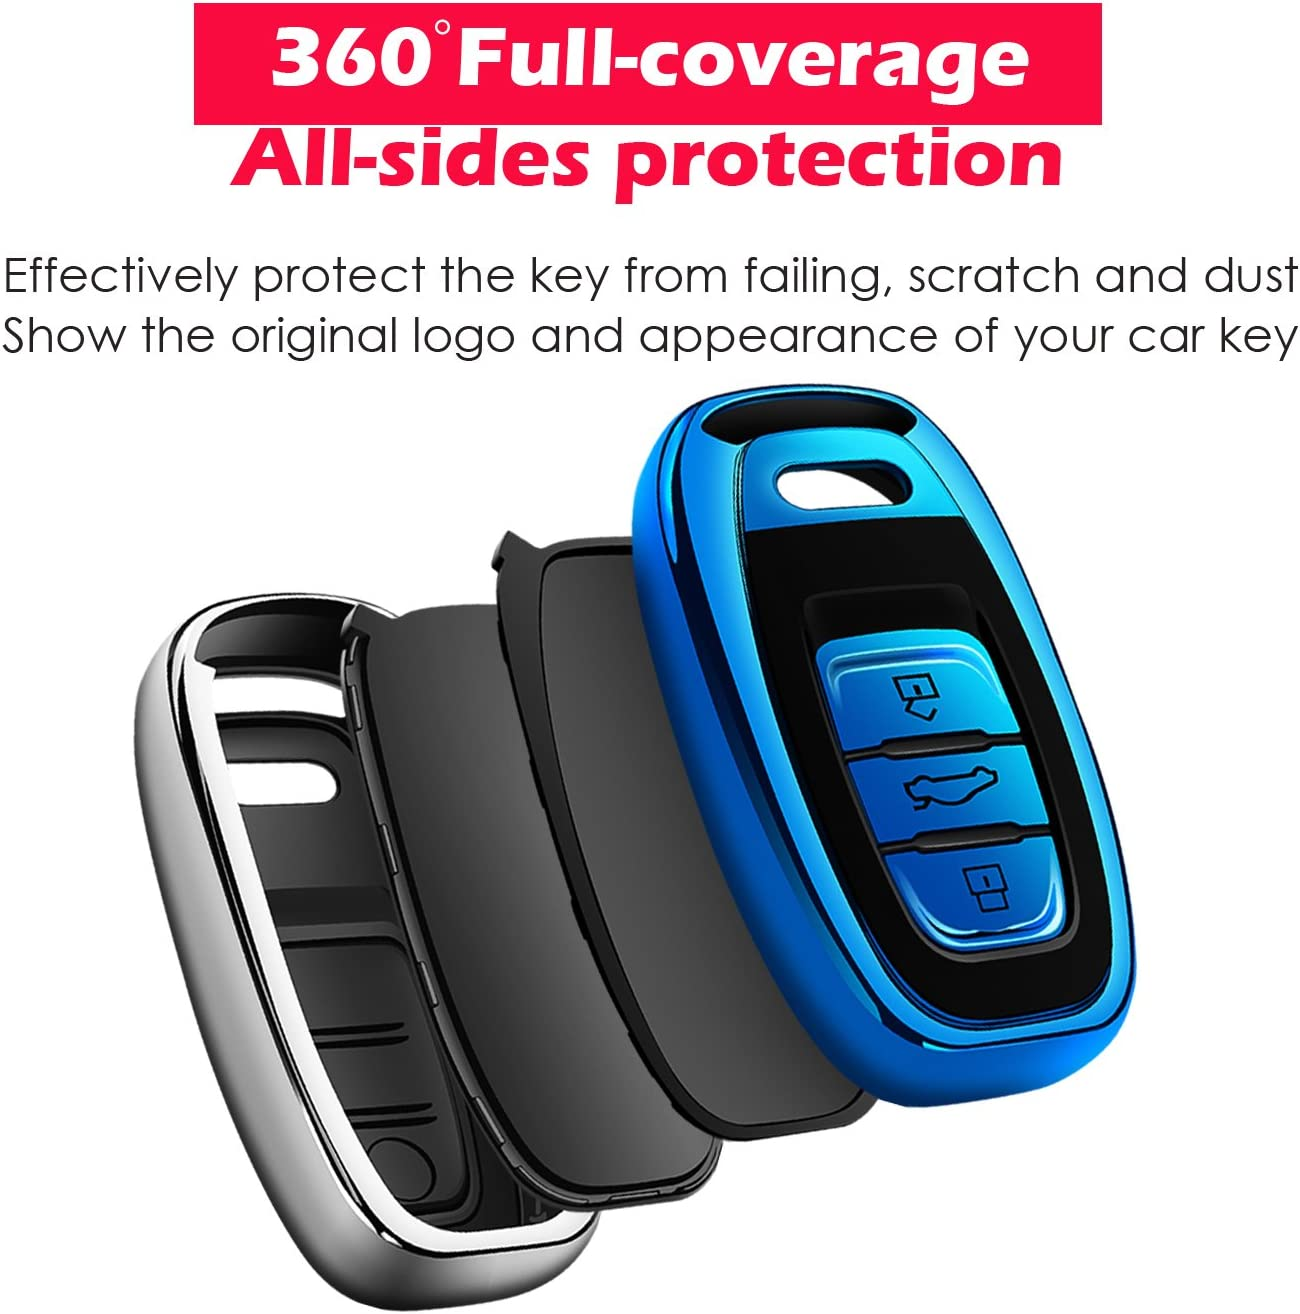 Blue Uxinuo for Audi Key Fob Cover Case Premium Soft TPU 360/° Full Protection Key Shell Case Cover Compatible with Audi A4L A6L Q5 A5 A7 A8 S5 S7 Keyless Entry/_